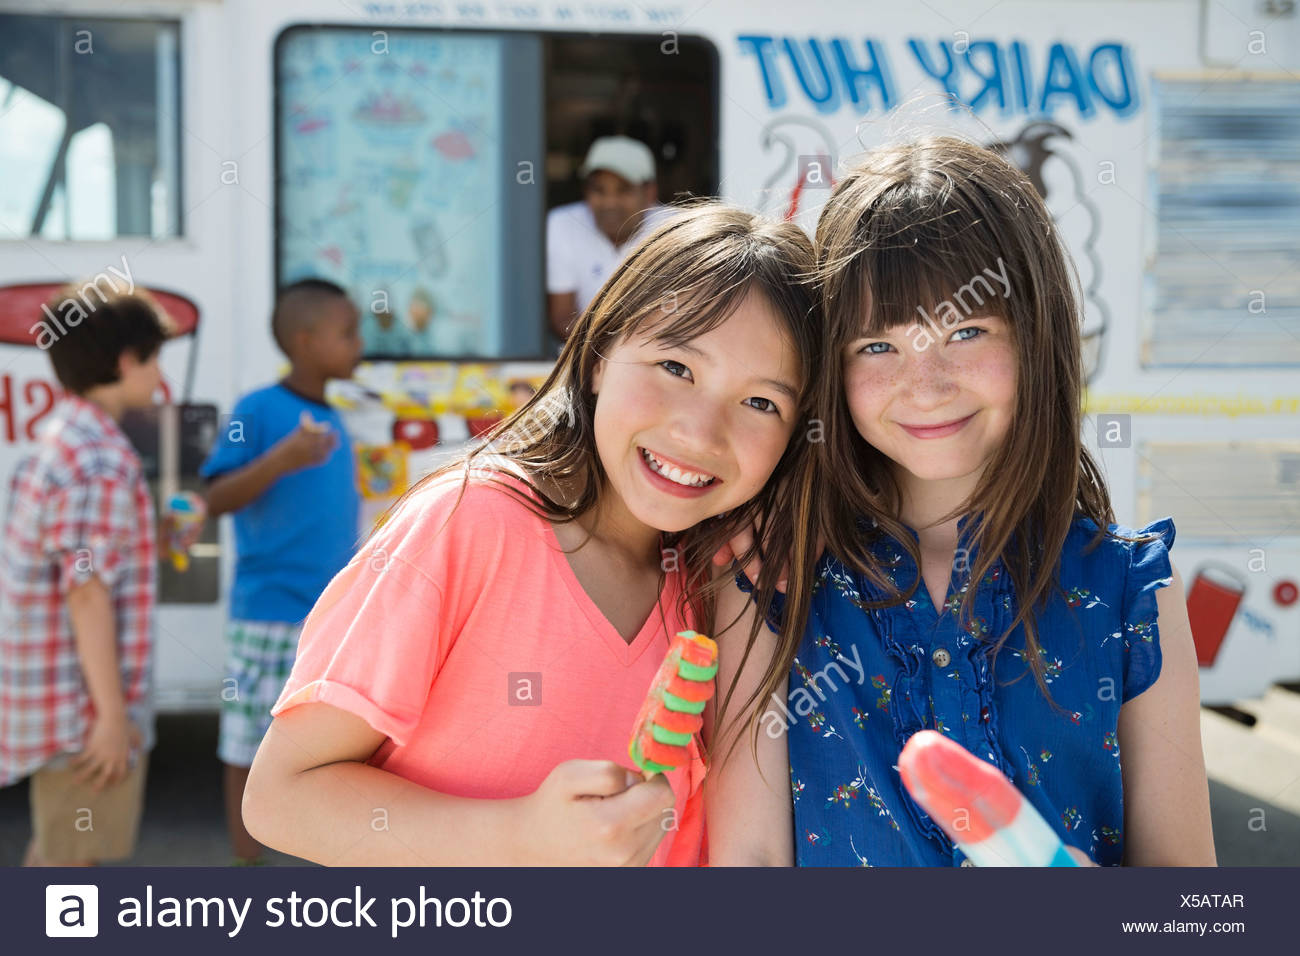 Portrait of cute girls holding popsicles - Stock Image